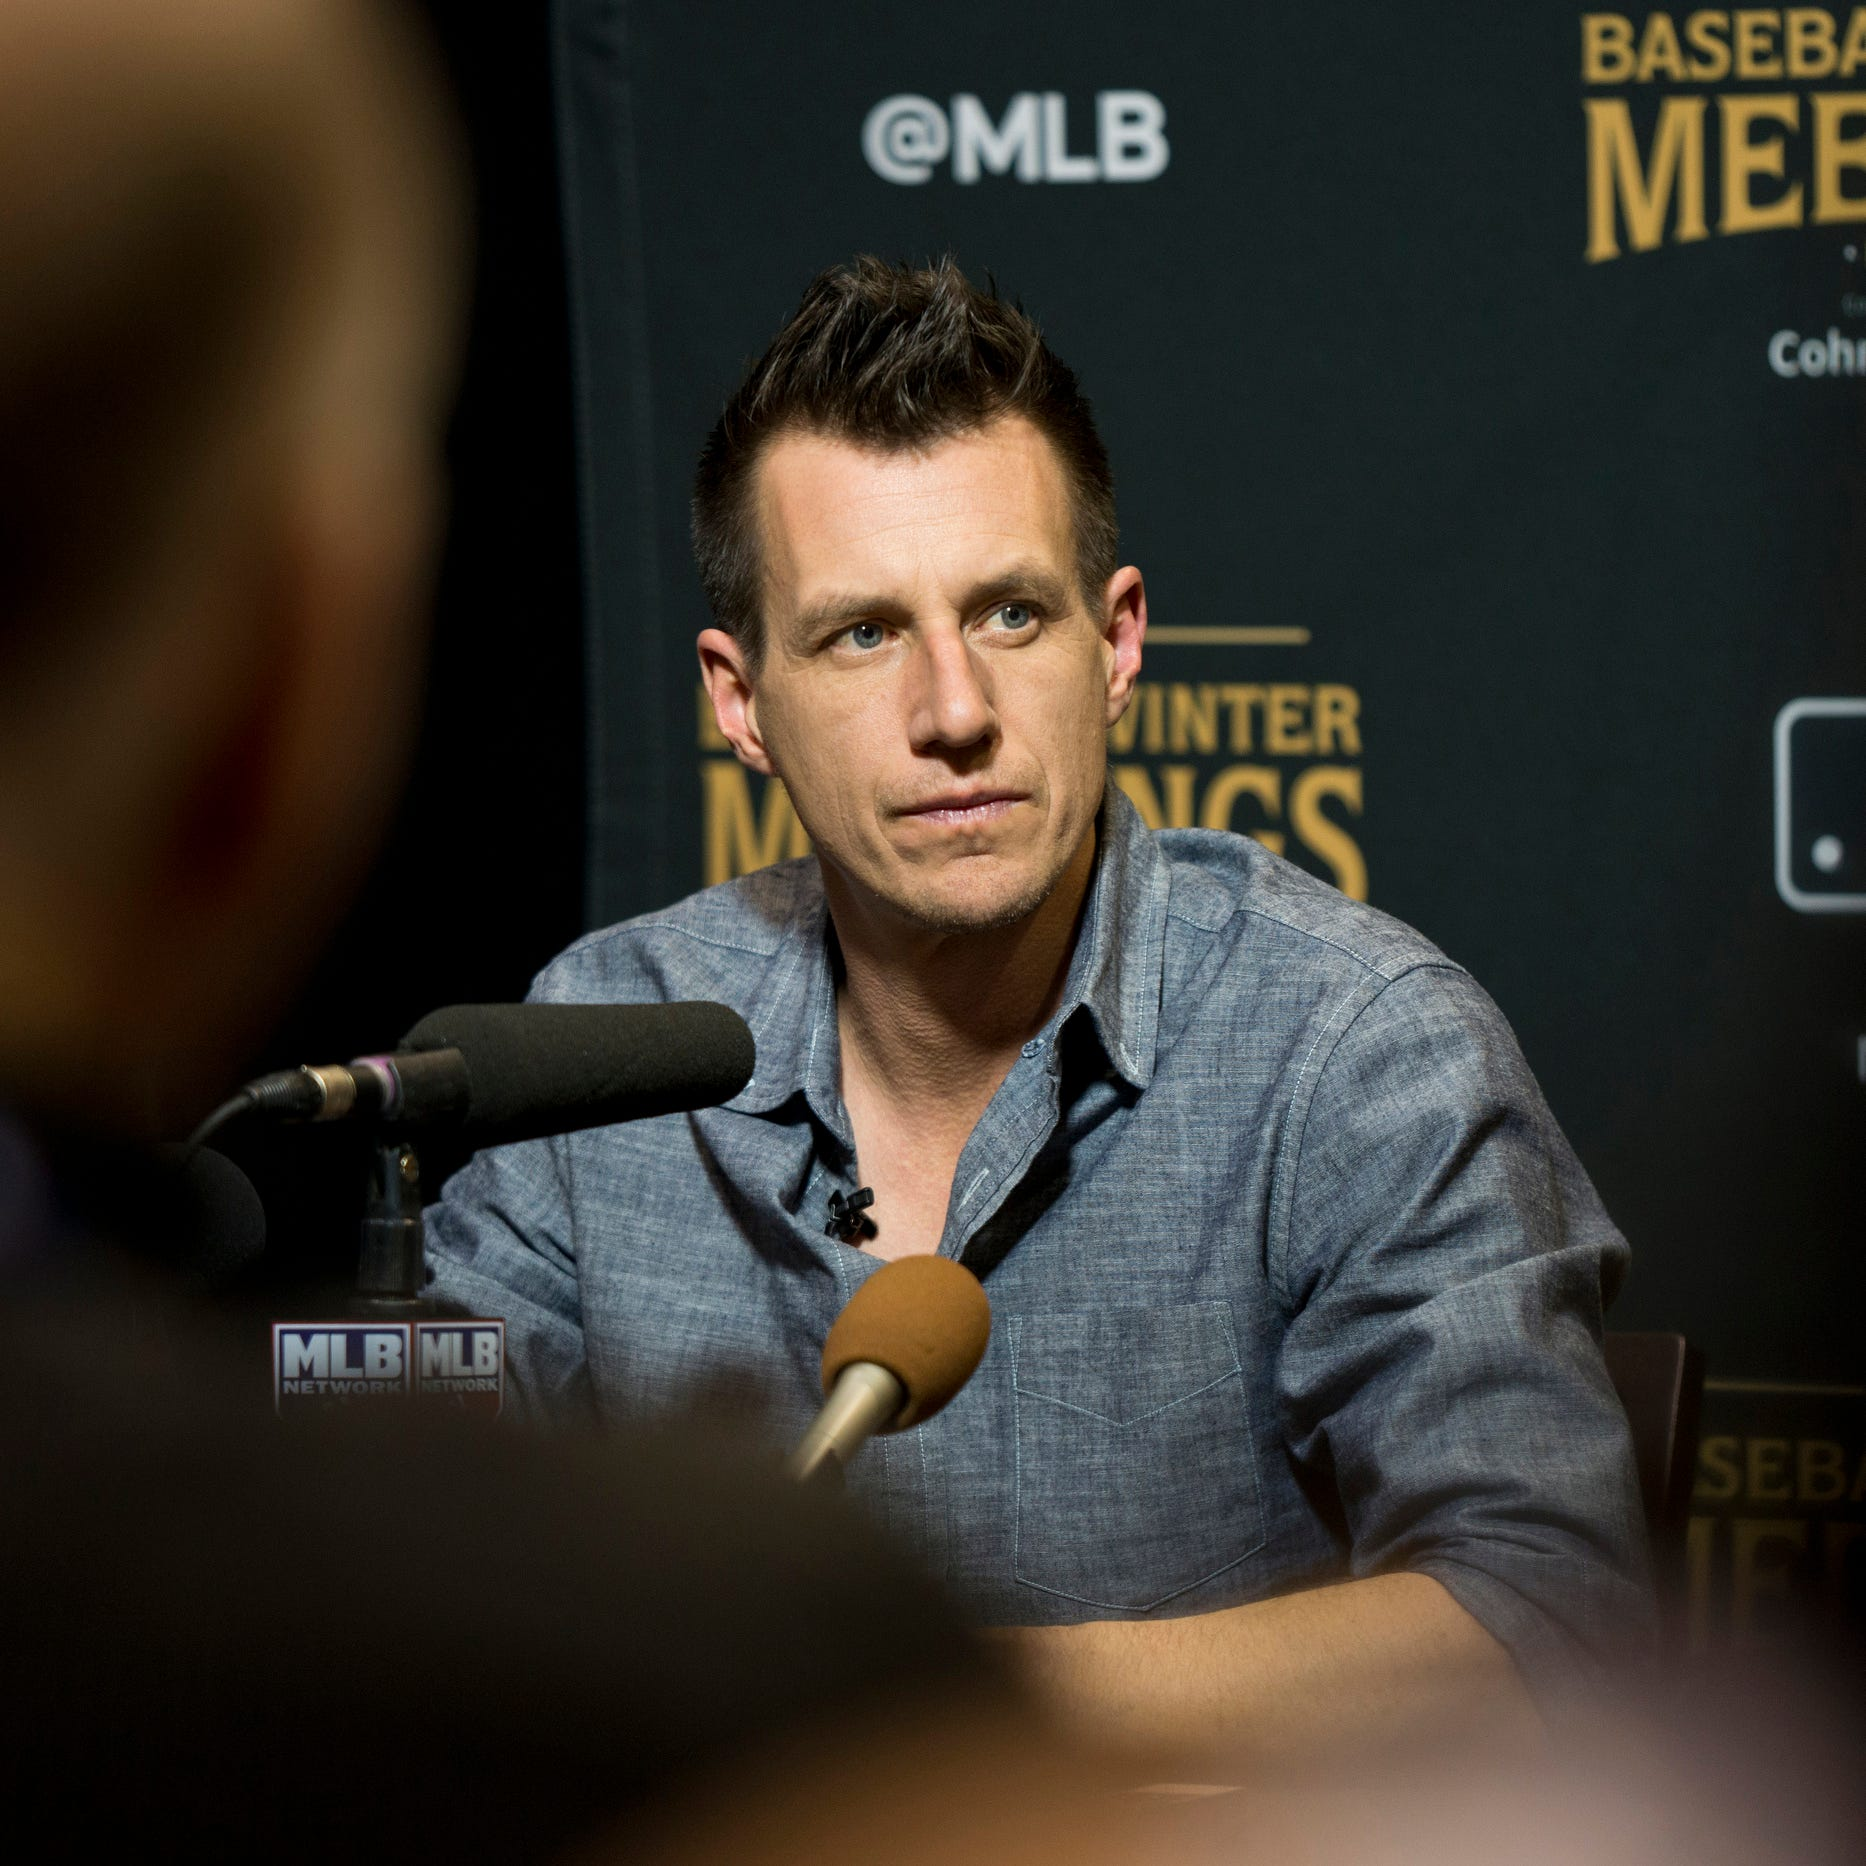 Brewers manager Craig Counsell 'excited' about chance of making another postseason run